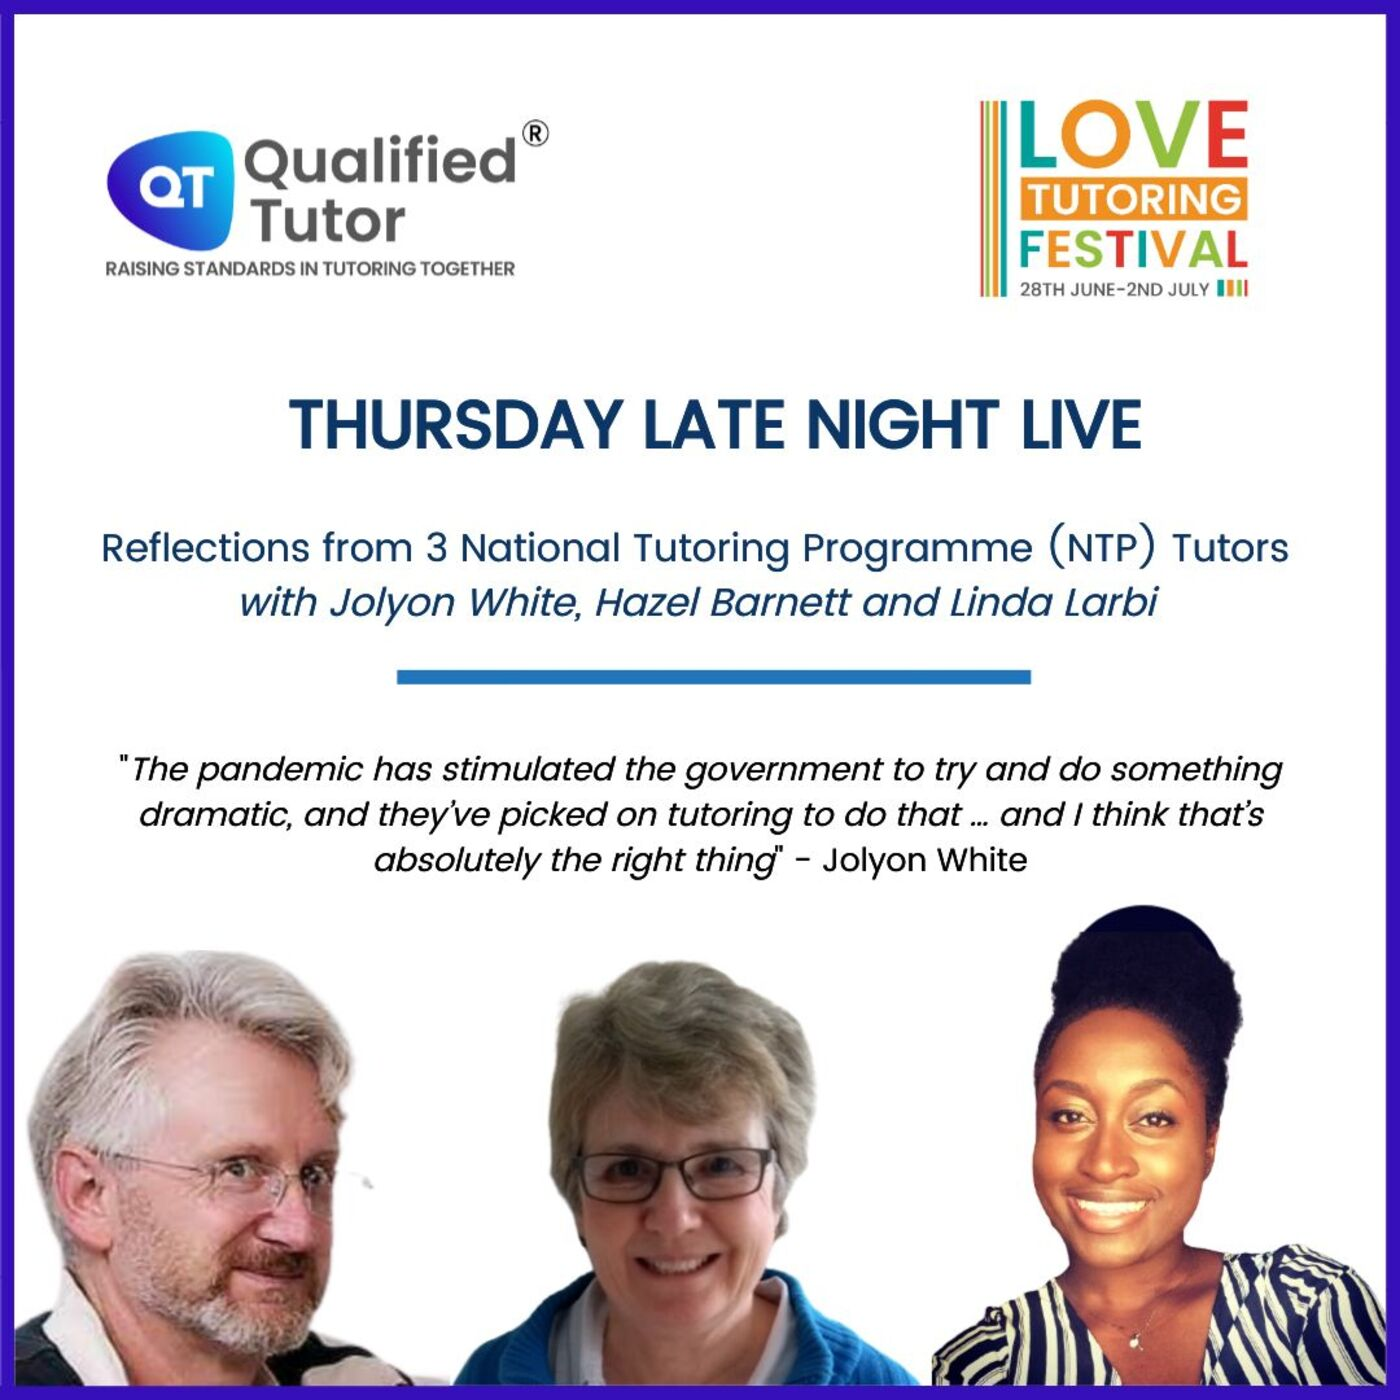 Love Tutoring Festival 2021 Podcast #4 - Reflections from 3 National Tutoring Programme (NTP) Tutors